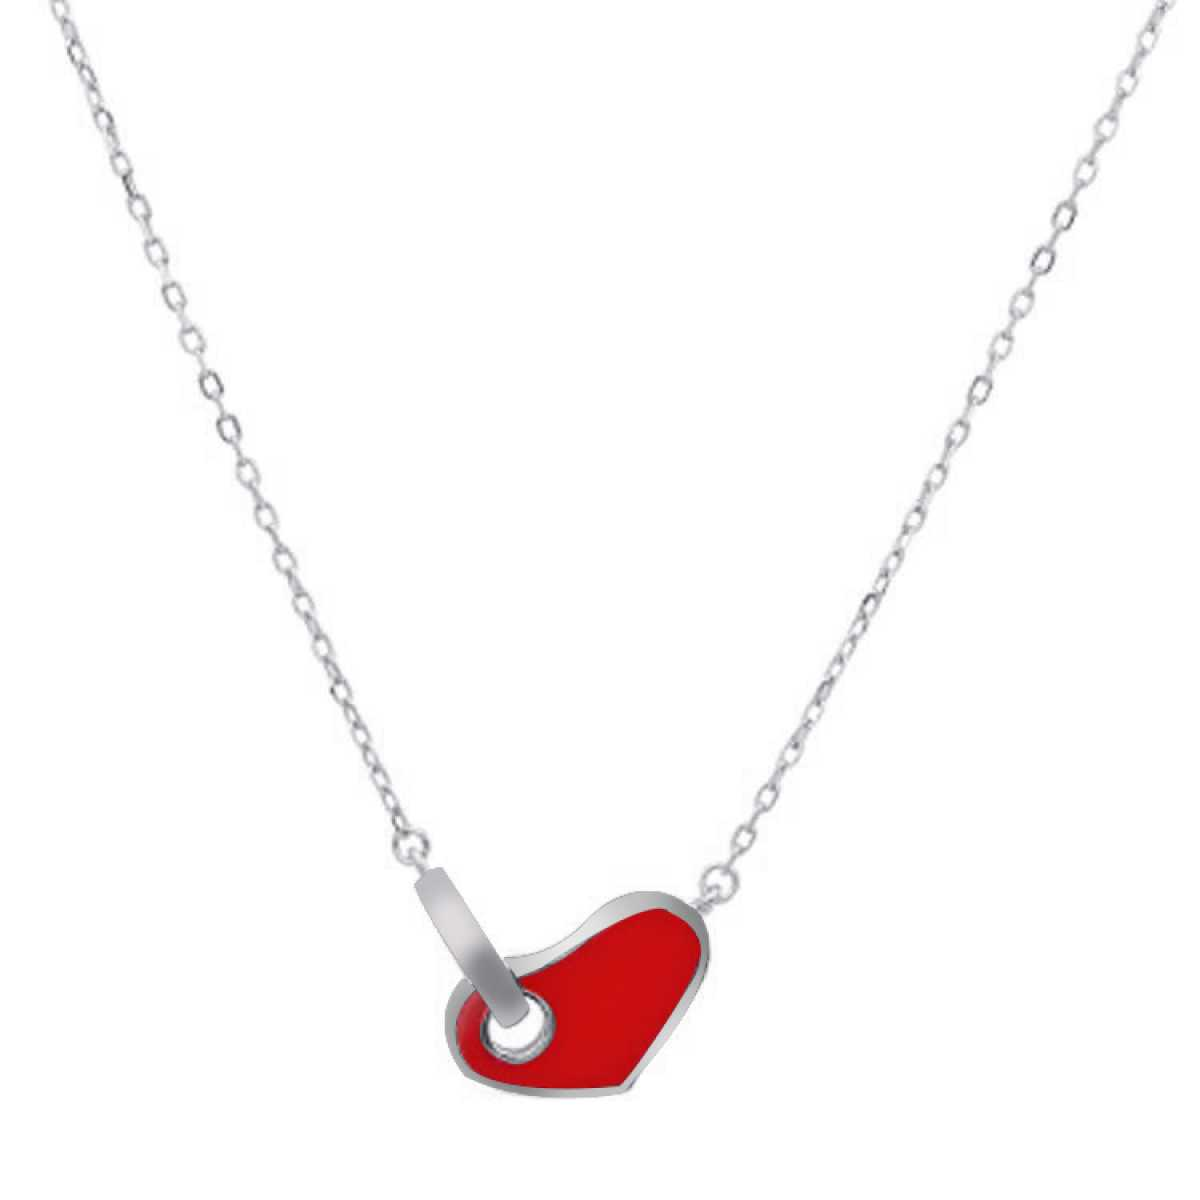 Love Key For Heart Sterling Silver  Chain